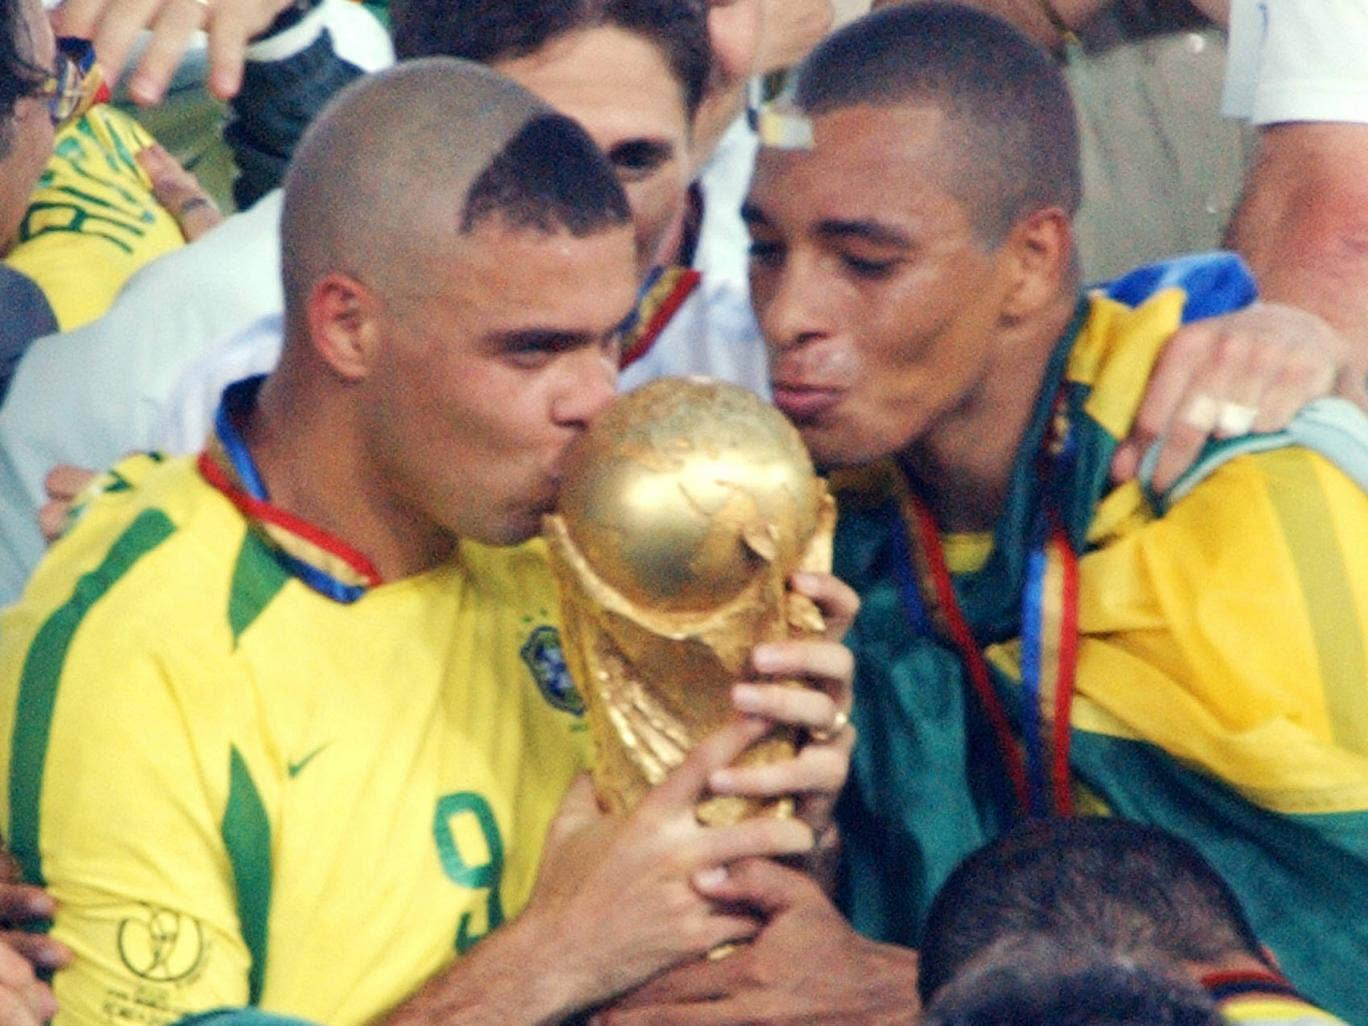 Gilberto Silva pictured alongside Ronaldo after winning the 2002 World Cup